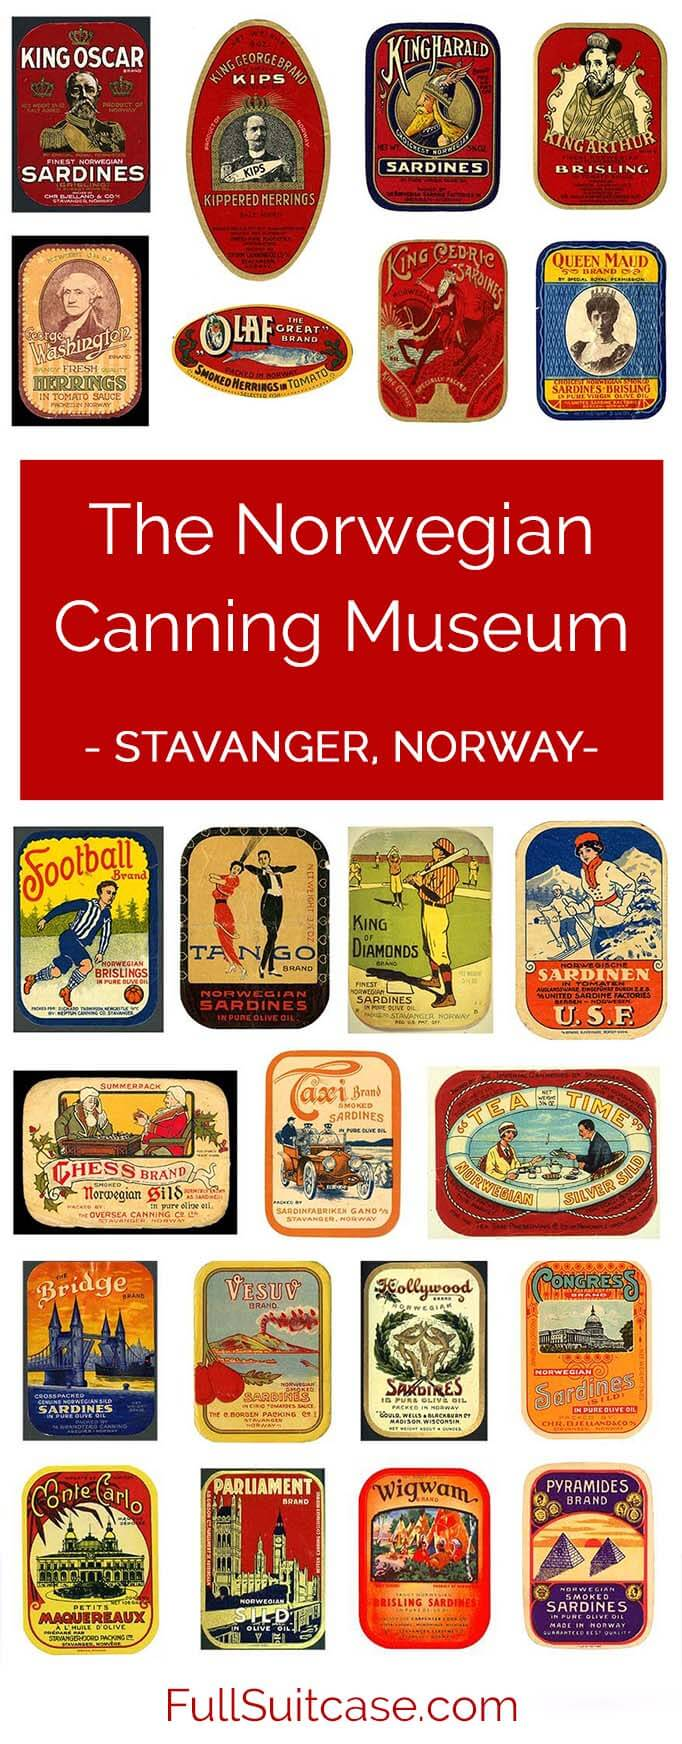 What to expect when visiting the Norwegian Canning Museum in Stavanger, Norway